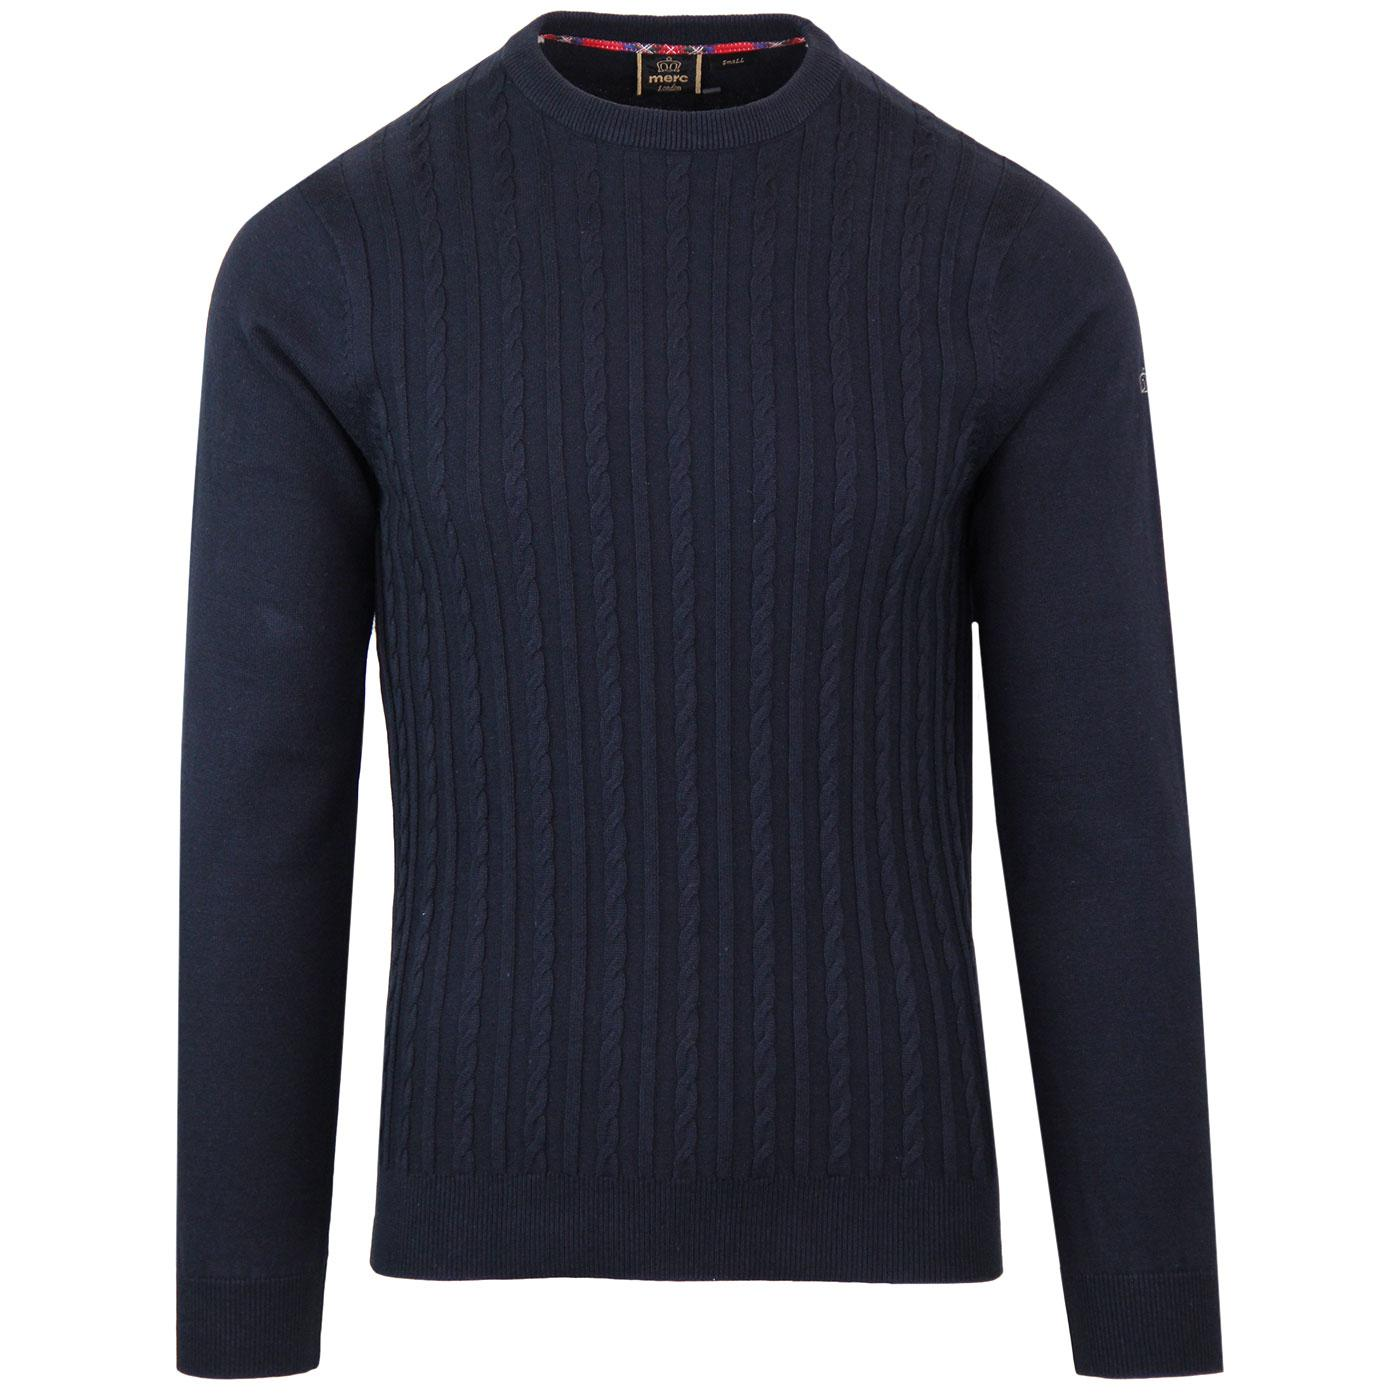 Muswell MERC Retro Mod Cable Knit Jumper DARK NAVY